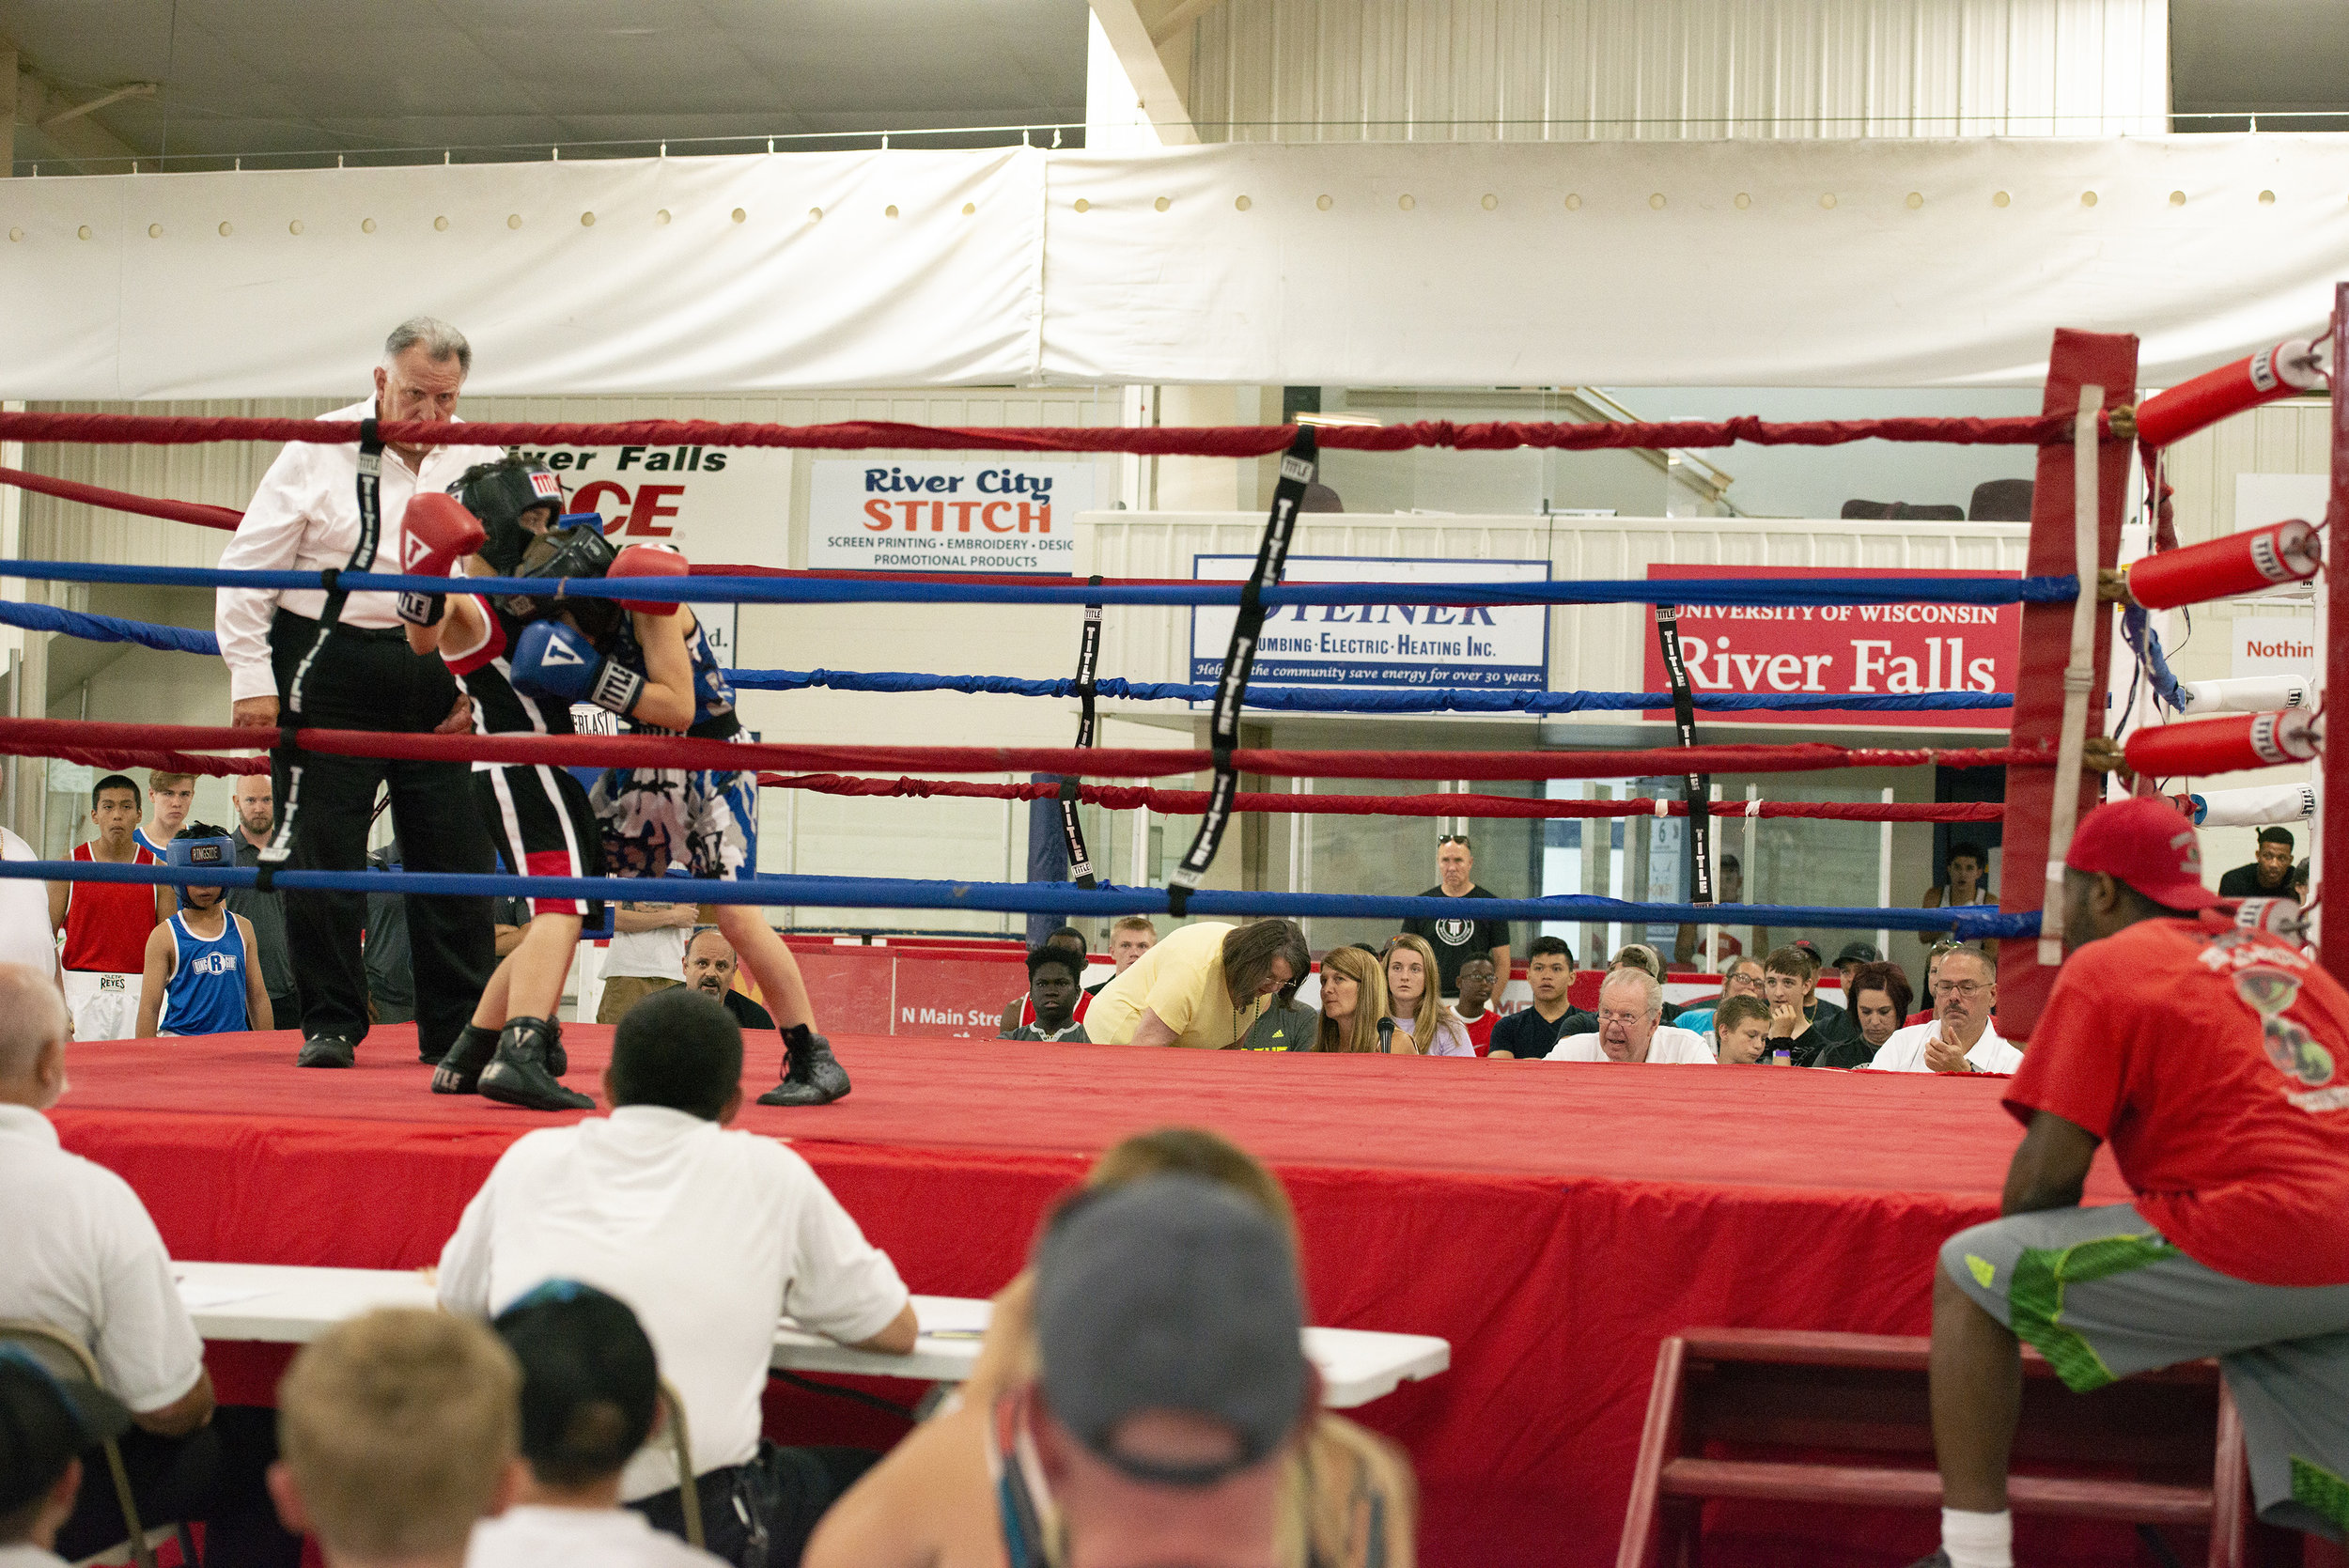 Boxing_Show3_Reverie_photography_Peek-a-Boo_Boxing_Gym_River Falls.jpg